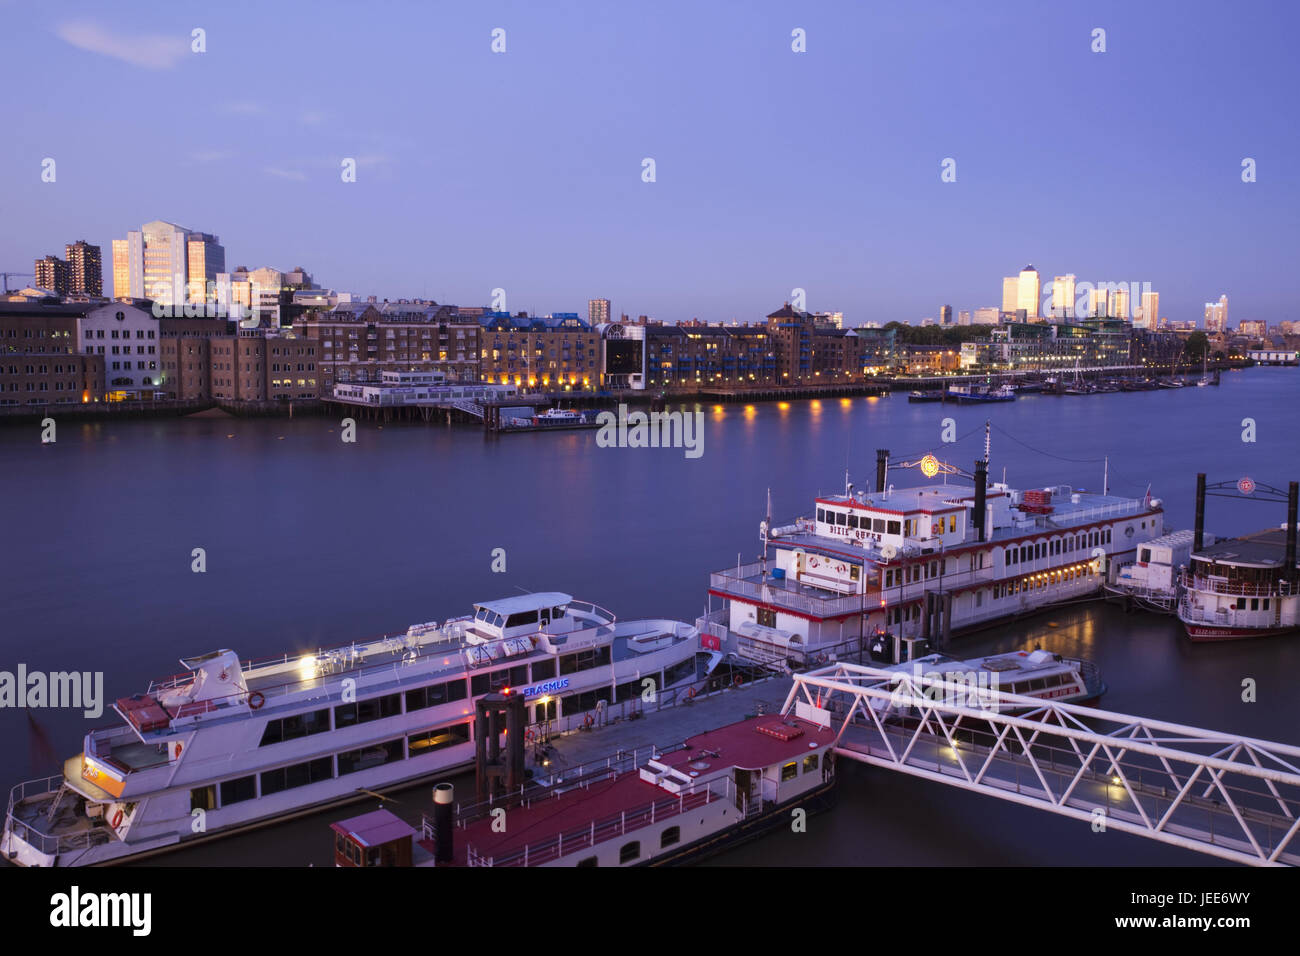 England, London, of dock country, dock country skyline, the Thames, dusk, town, architecture, building, skyline, - Stock Image